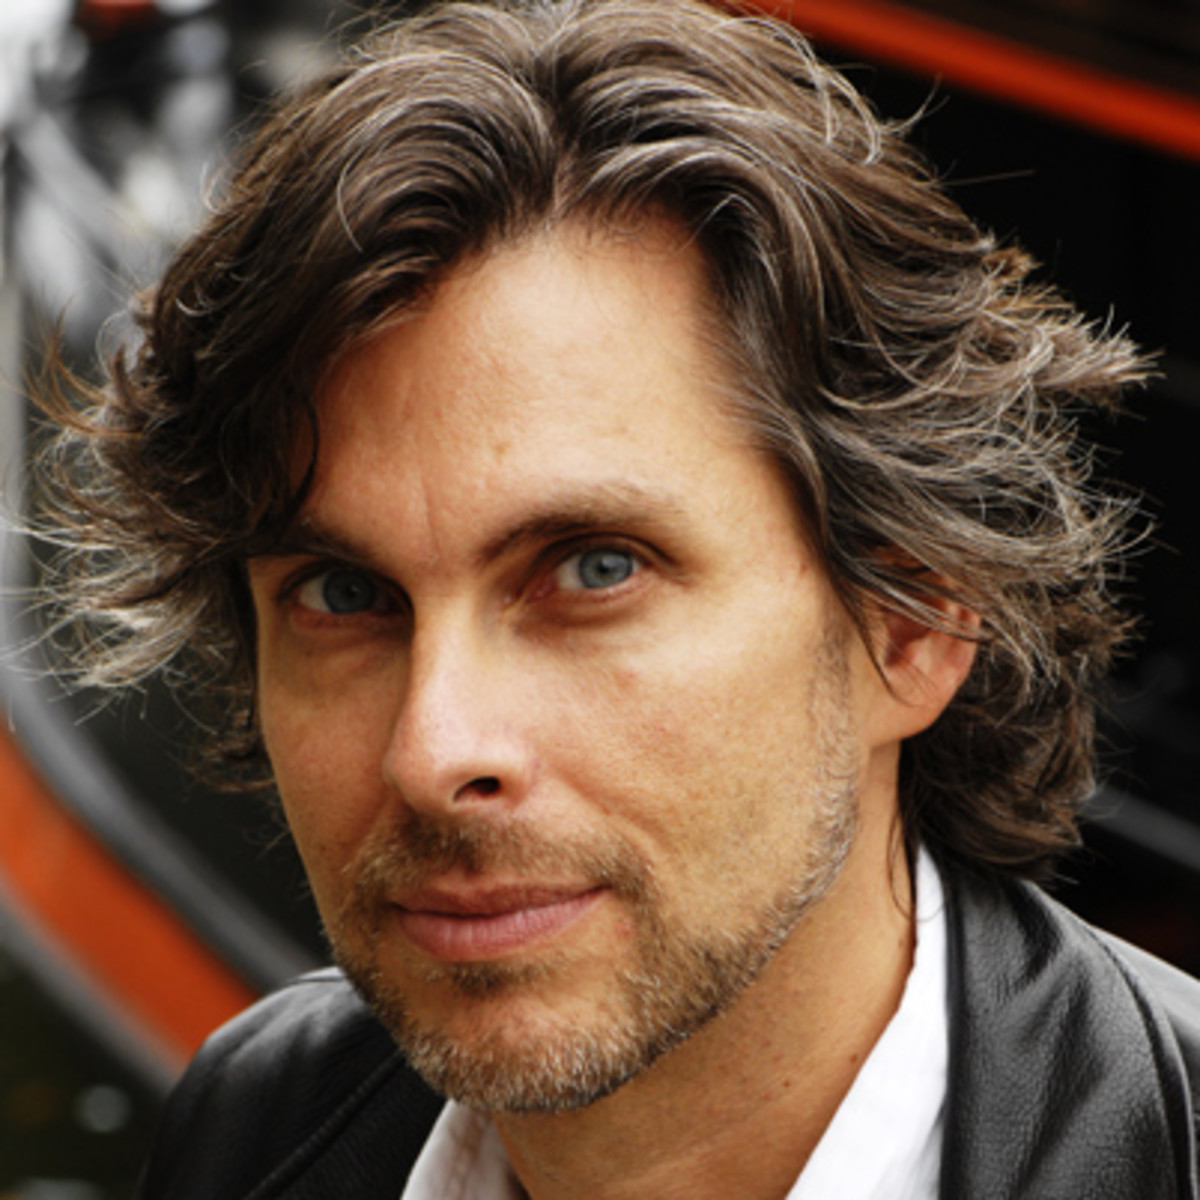 michael chabon essay the road See contact information and details about michael chabon jump to the yiddish policemen's union, gentleman of the road and the essay collections maps.